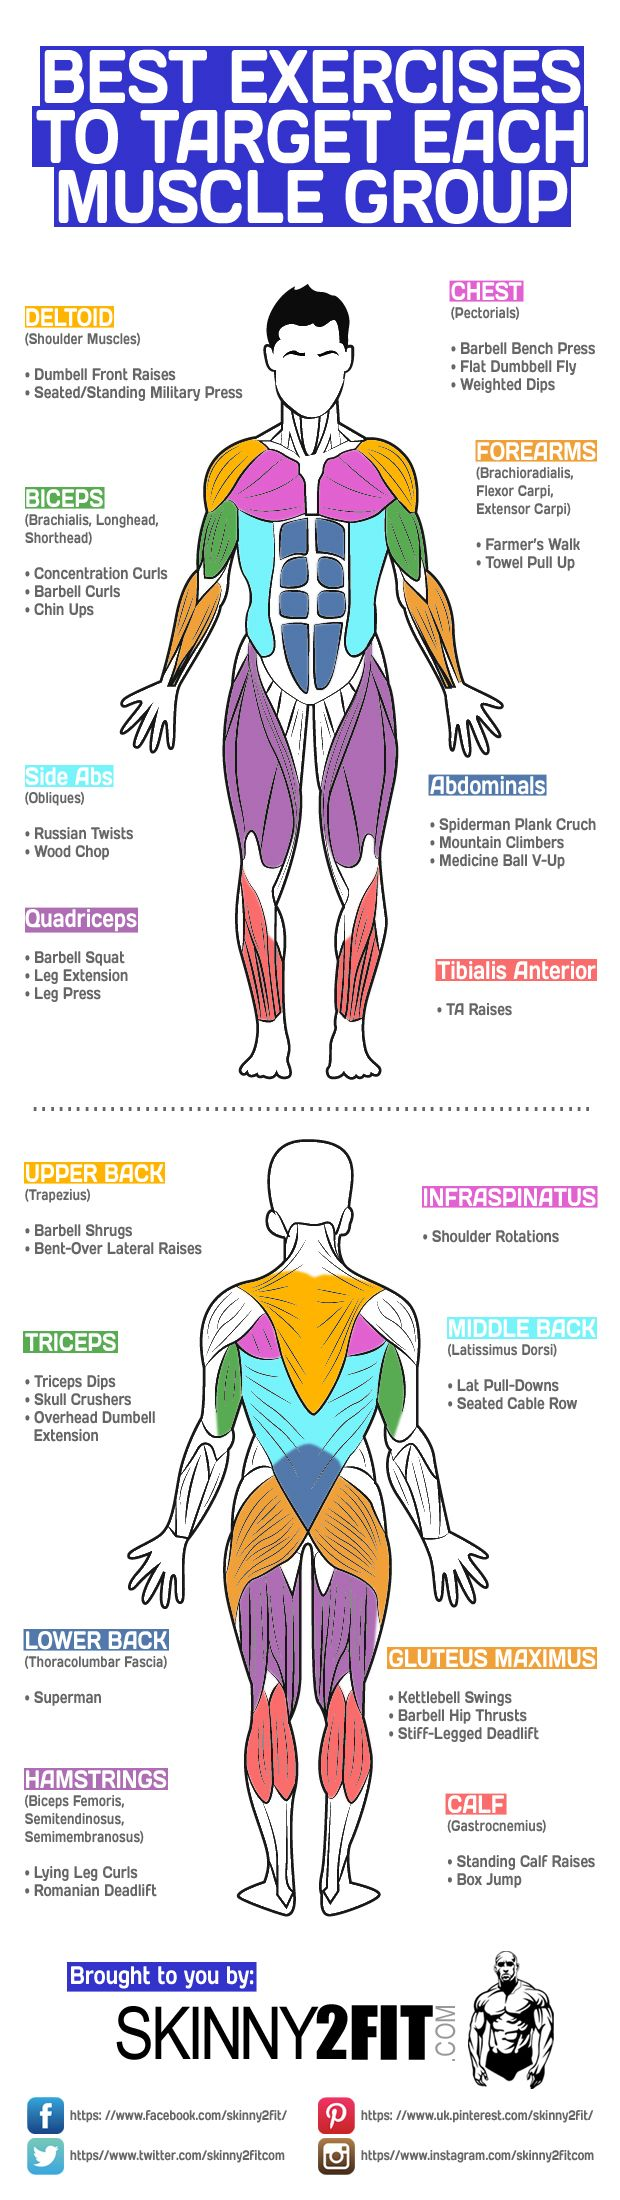 Of course compound exercises like the bench press, squat and deadlift are good more working multiple muscle groups, but if you have time you could also incorporate other exercises to isolate them even further.  The following graphic shows some of the best exercises to target each muscle group. Perhaps incorporate a few of these into your next workout and see the rewards. #bodybuilding #bodybuilder #fitness #health #exercise